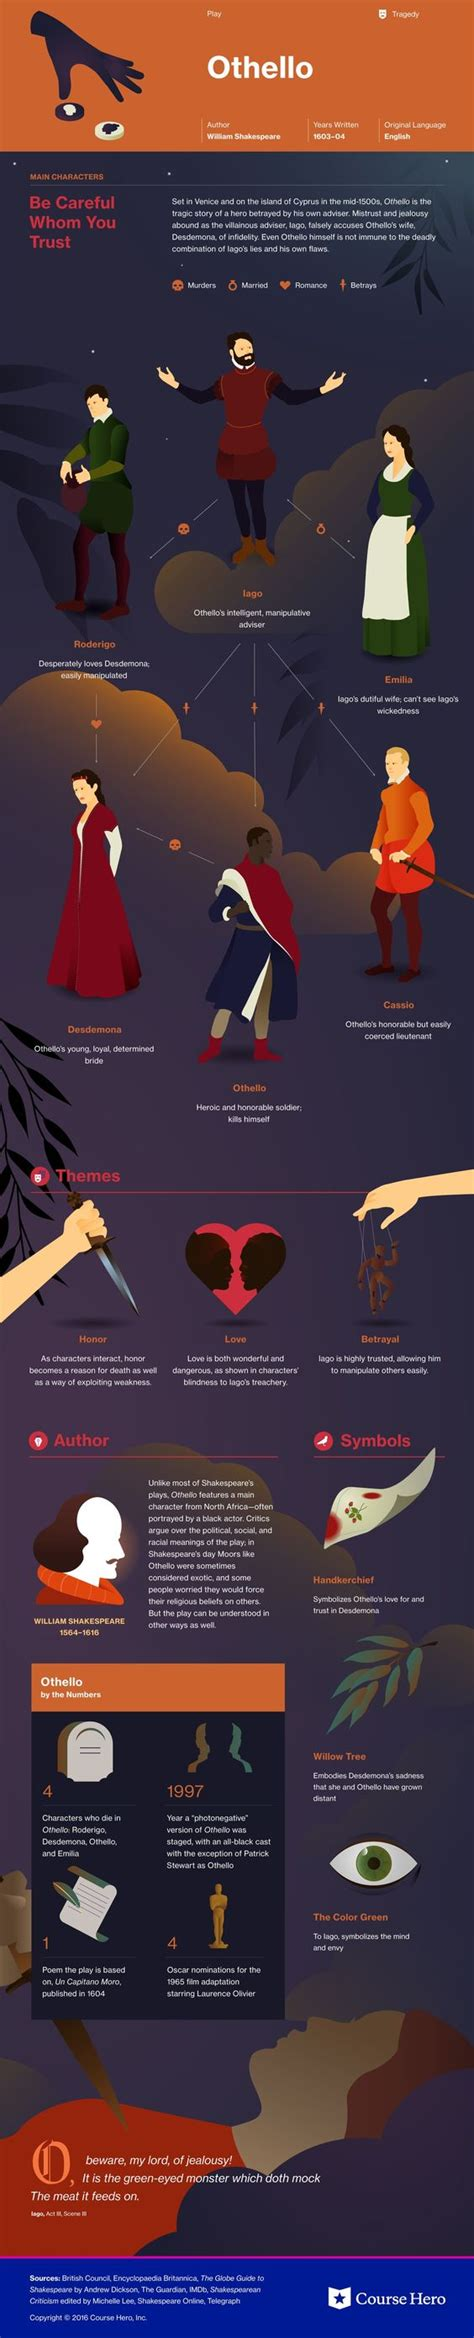 themes in macbeth and othello othello infographic lit read stories pinterest